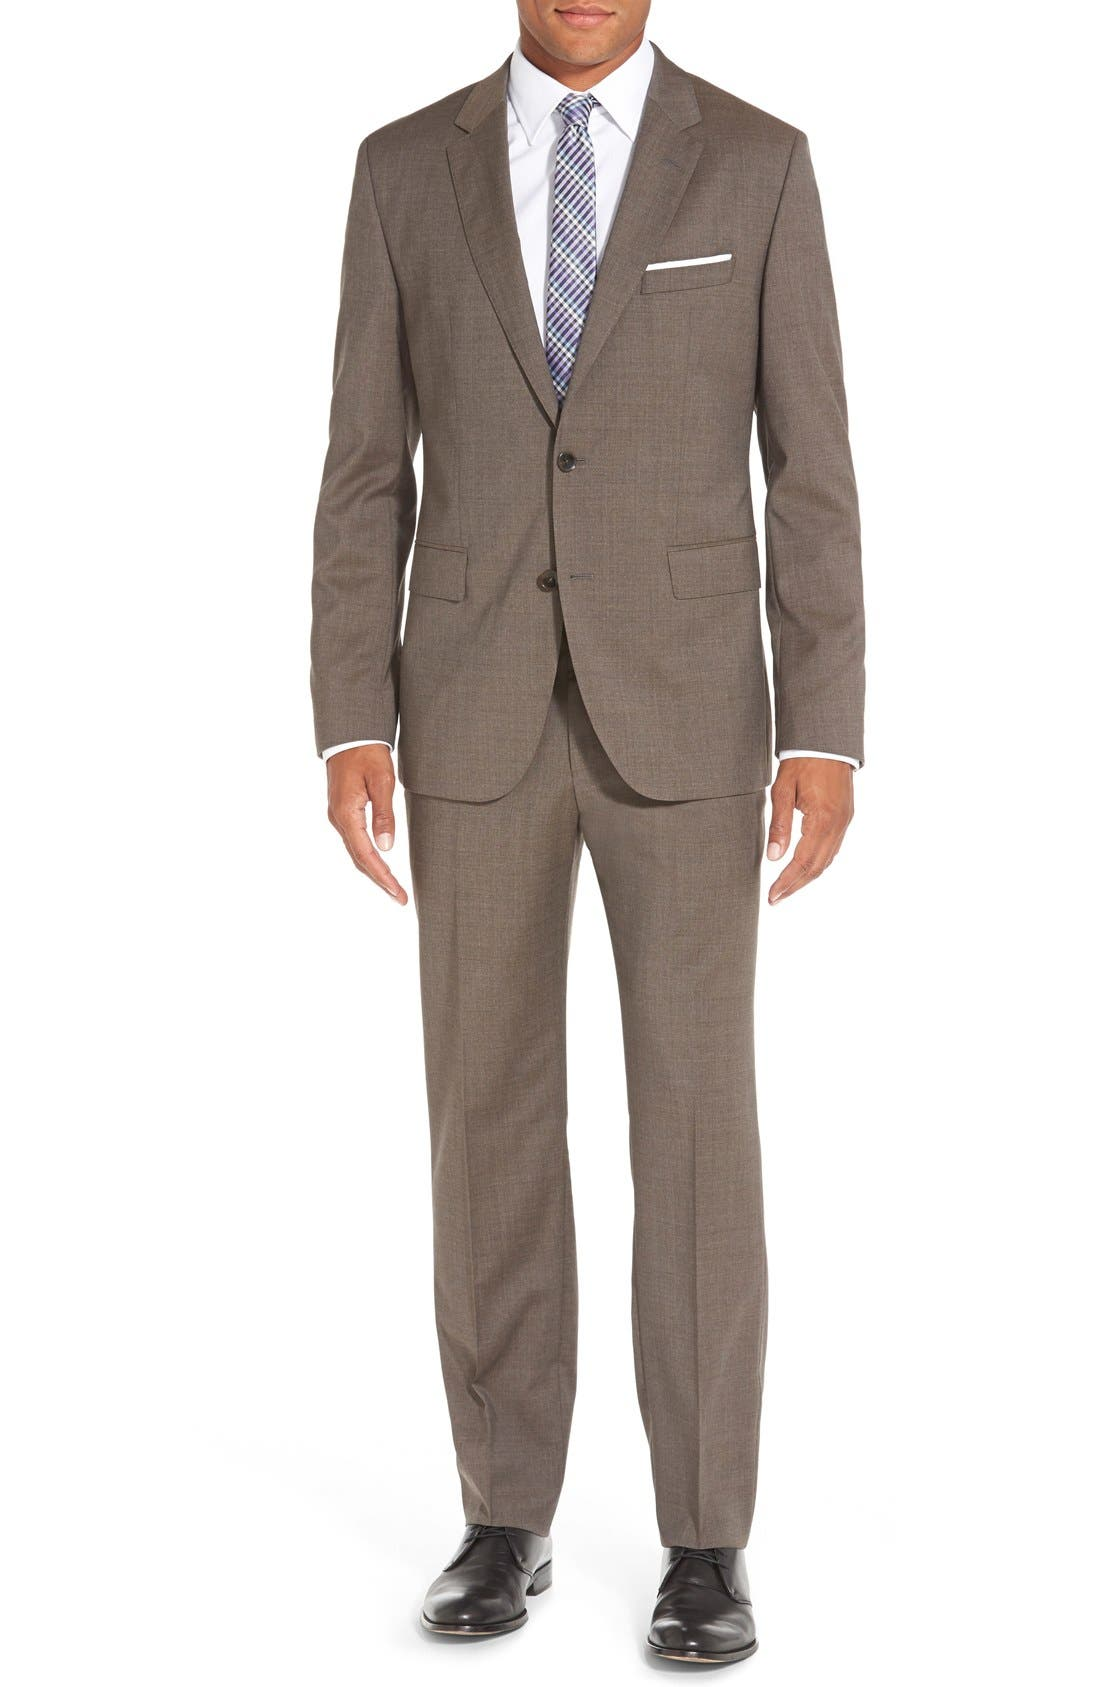 Main Image - BOSS 'Johnstons/Lenon' Trim Fit Solid Wool Suit